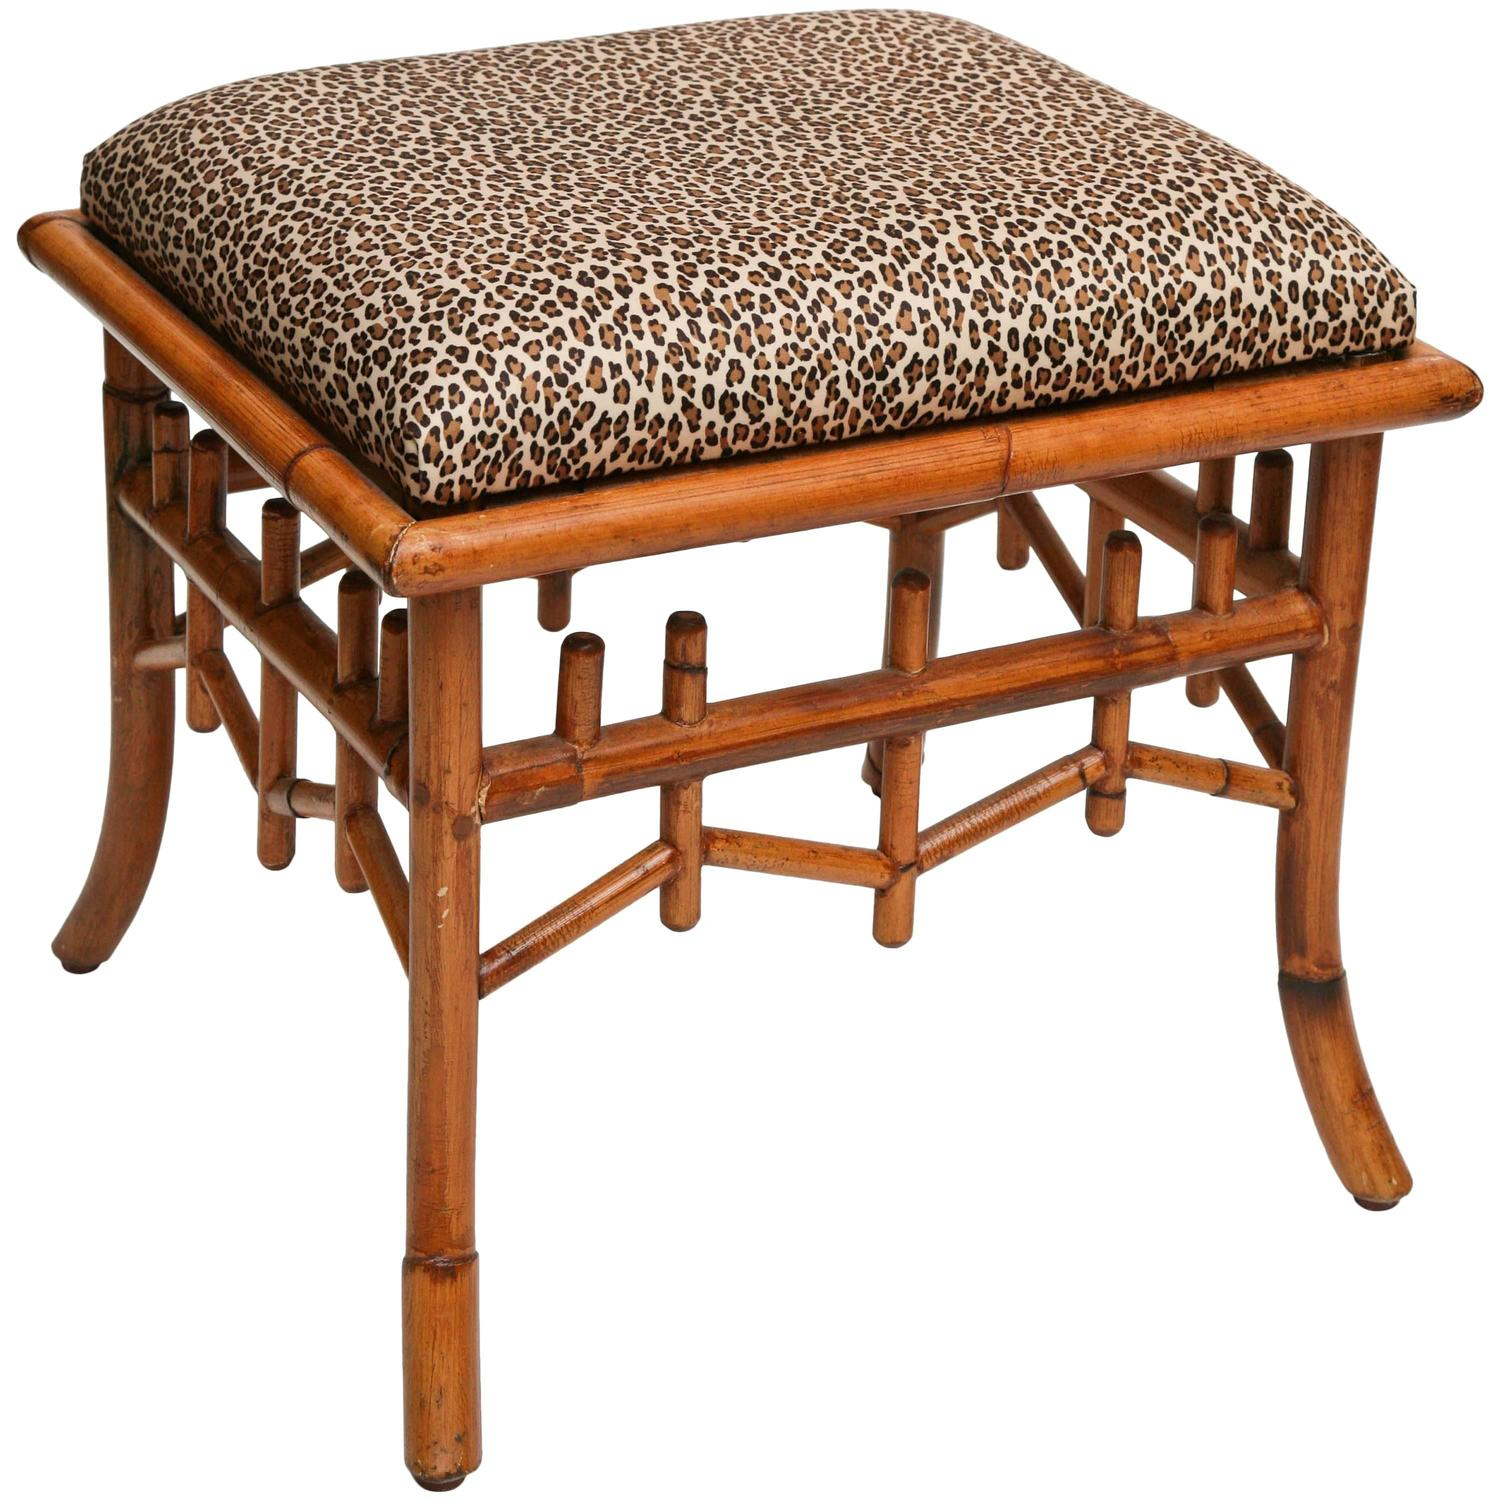 Superb Bamboo Rattan Bench At 1stdibs